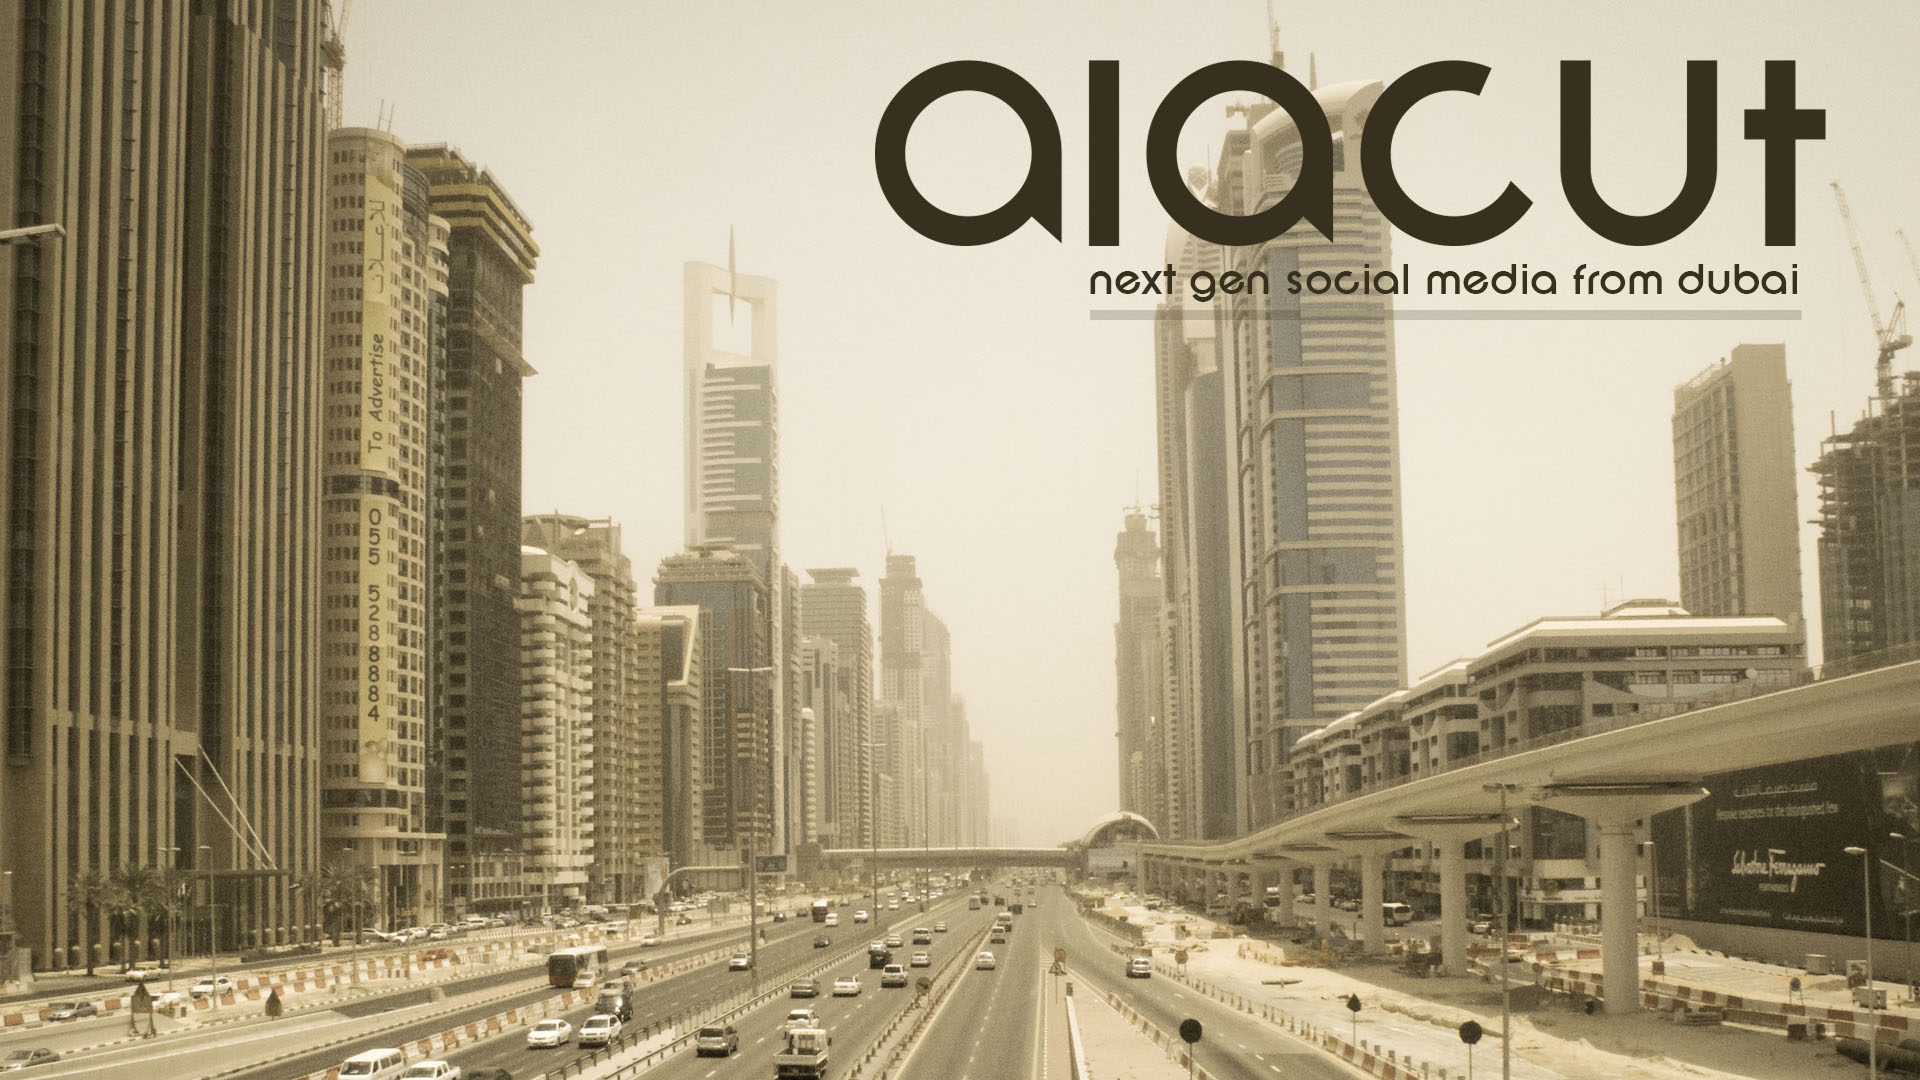 new-dubai-based-social-media-website-to-launch-next-year